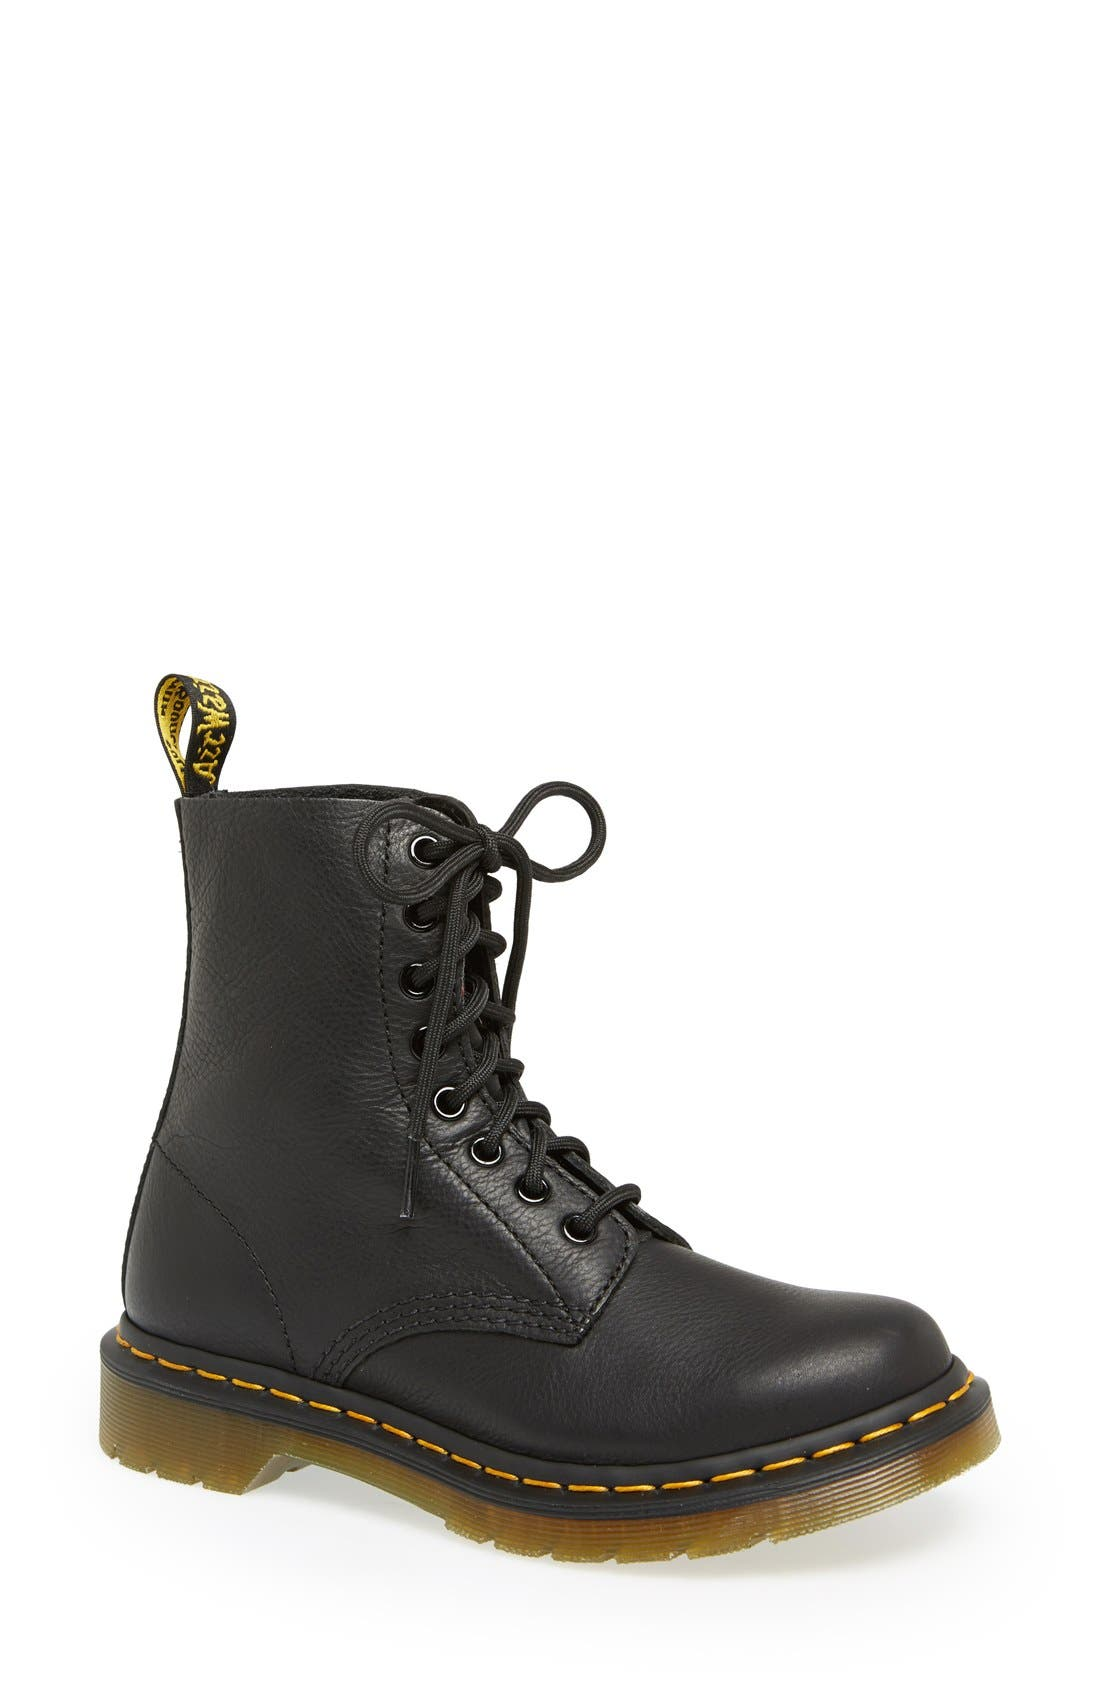 DR. MARTENS, 'Pascal' Boot, Main thumbnail 1, color, BLACK VIRGINIA